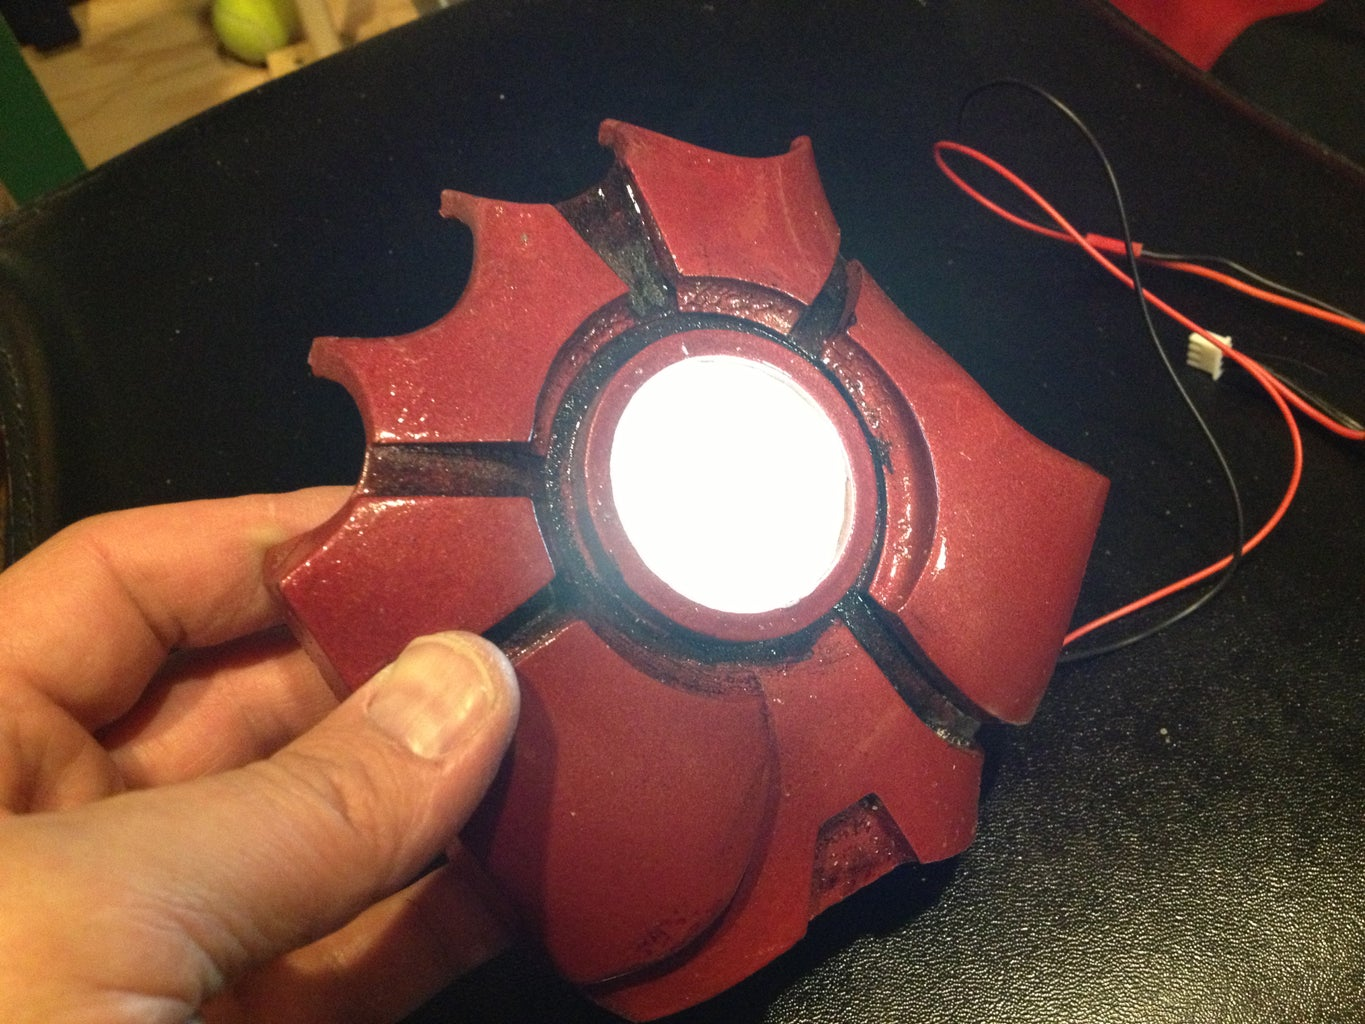 Chest and Repulsor Lights